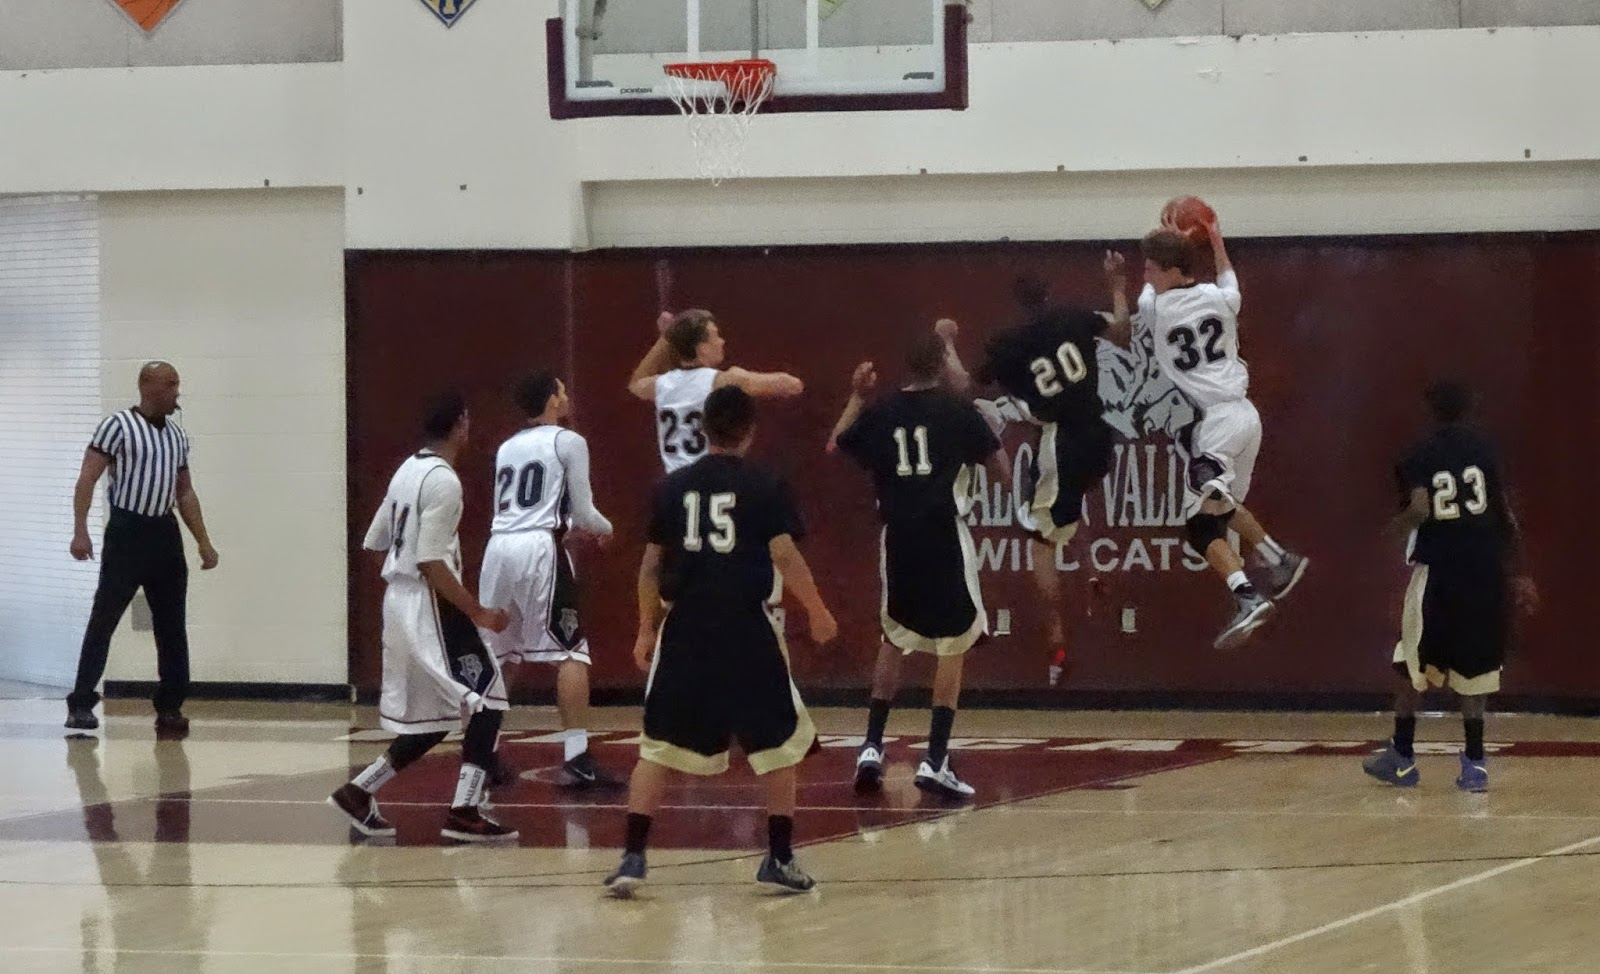 Paloma Valley Kicks Off Home Tournament With Victory inside Paloma Valley High School Menifee Holidays